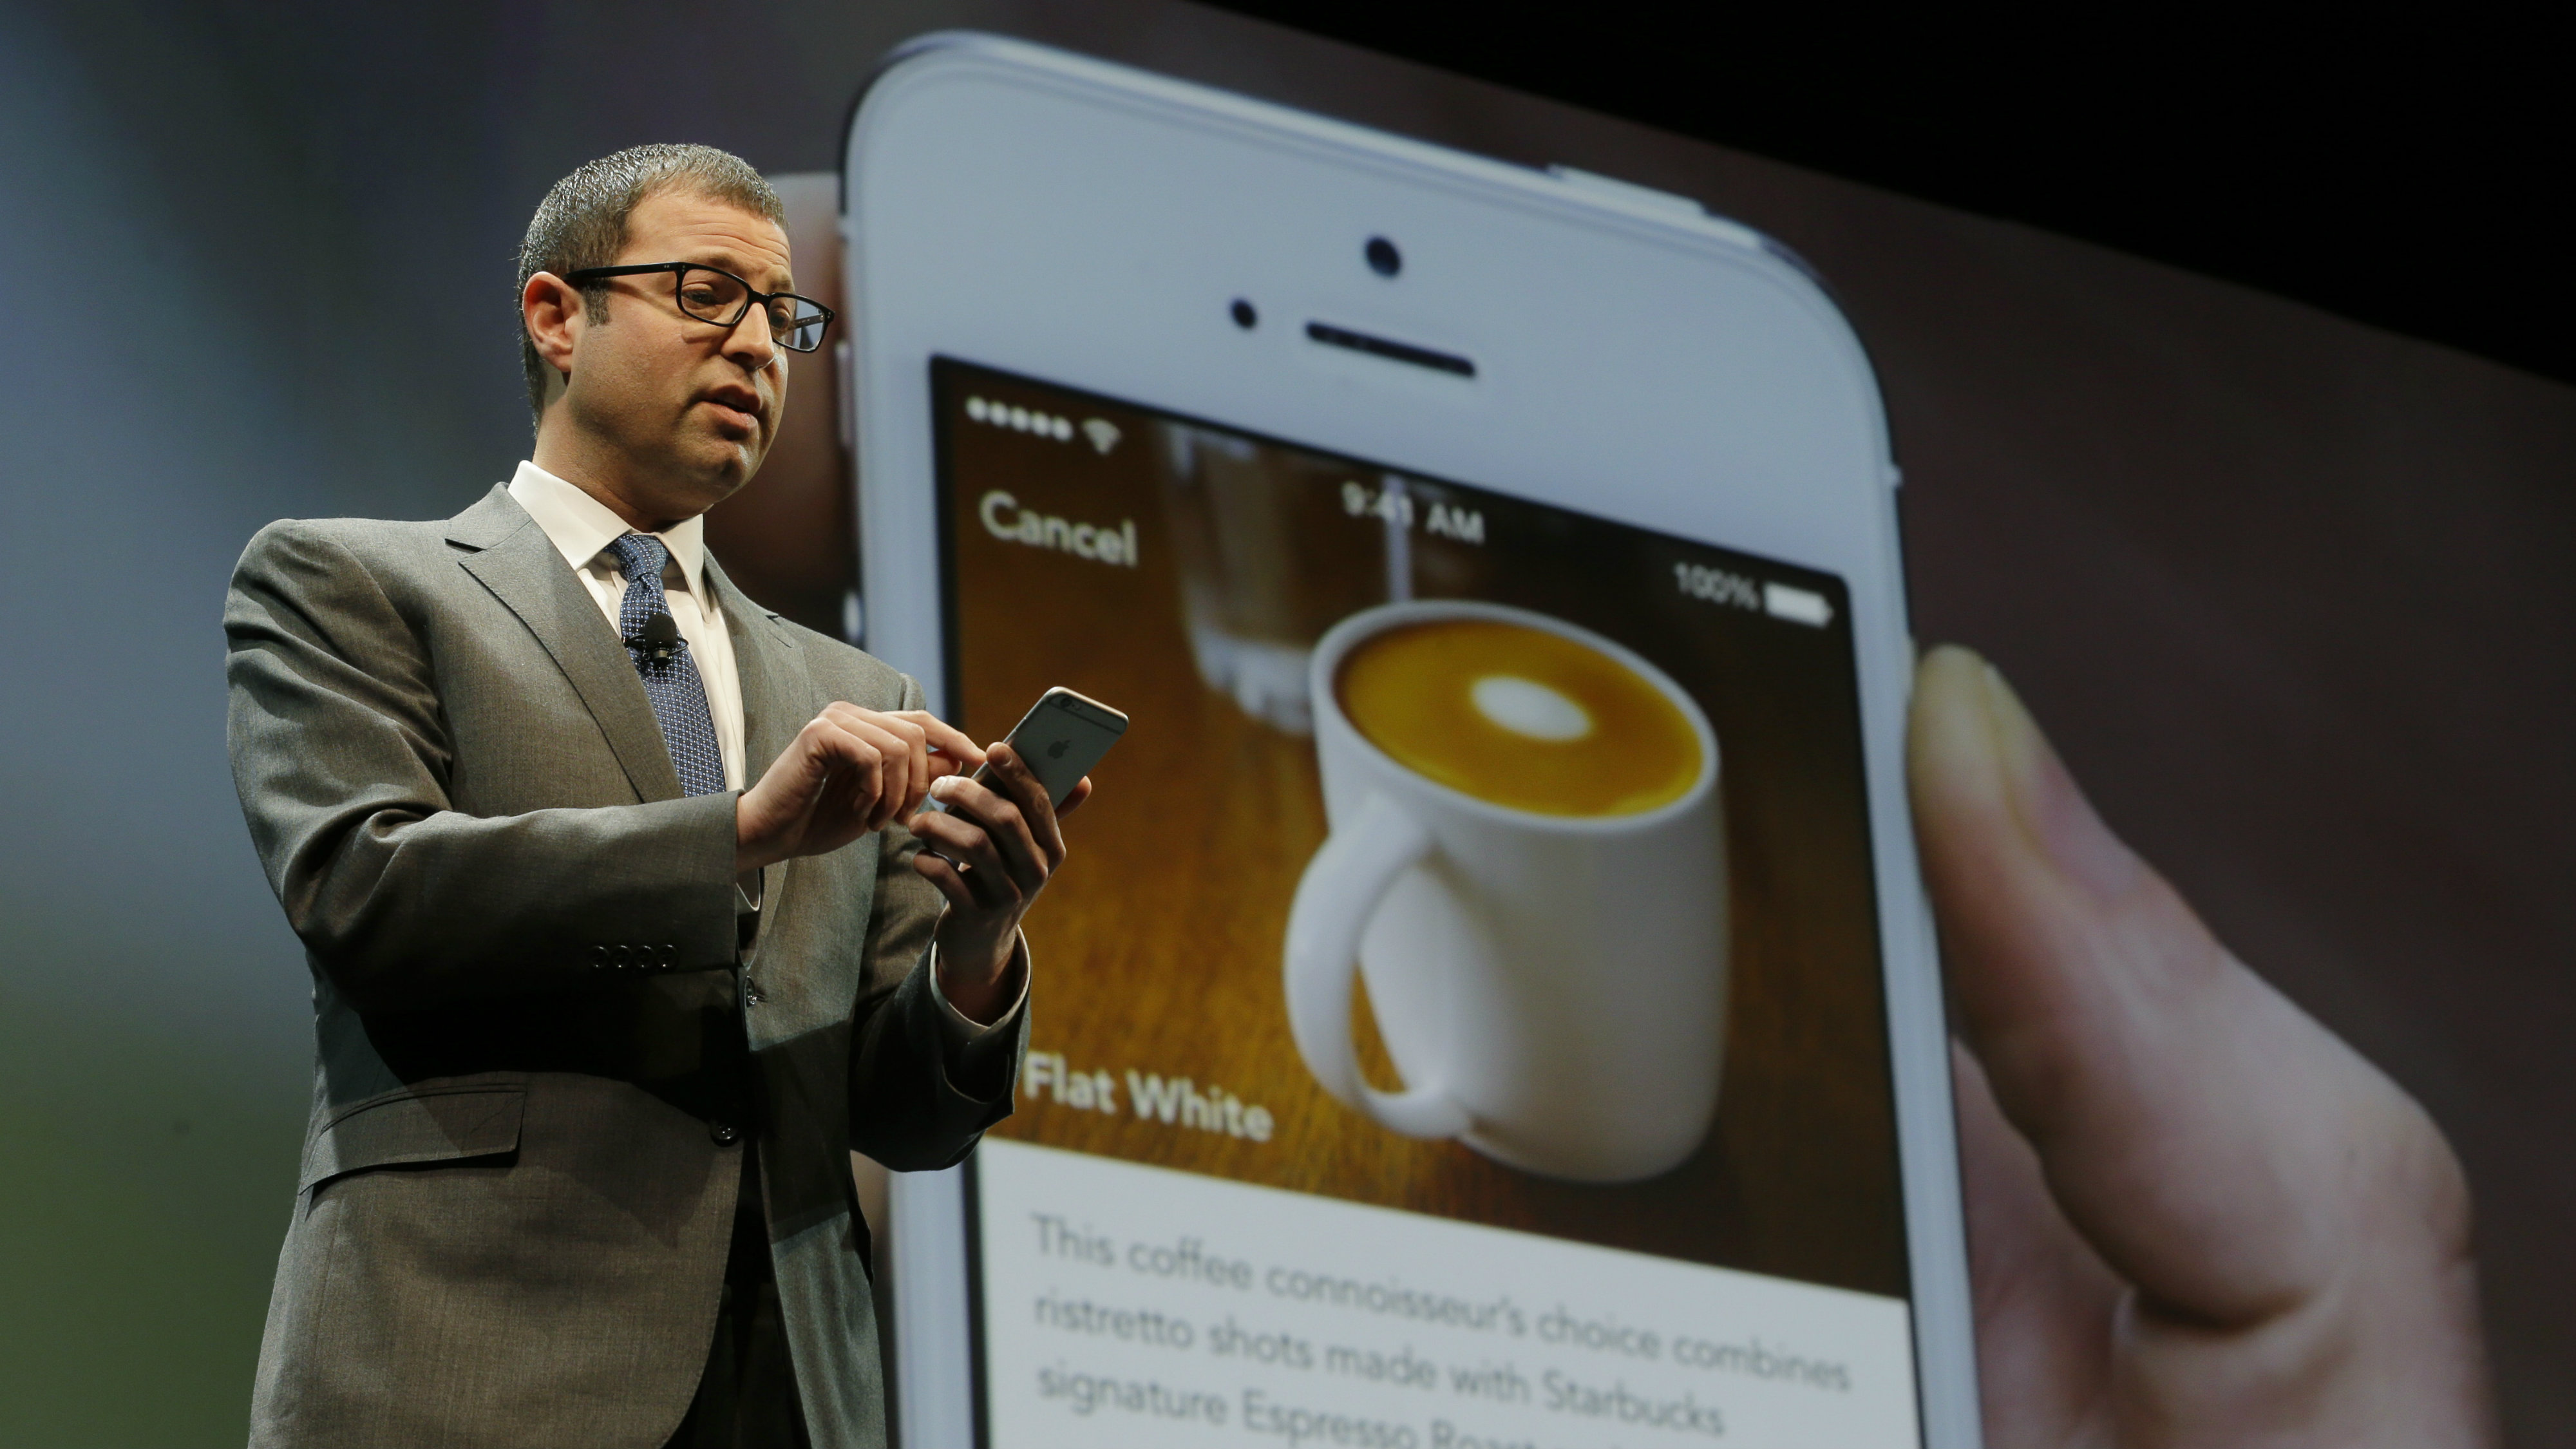 Adam Brotman, Starbucks chief digital officer, talks about the company's new mobile ordering app Wednesday, March 18, 2015 at Starbucks Coffee Company's annual shareholders meeting in Seattle. (AP Photo/Ted S. Warren)